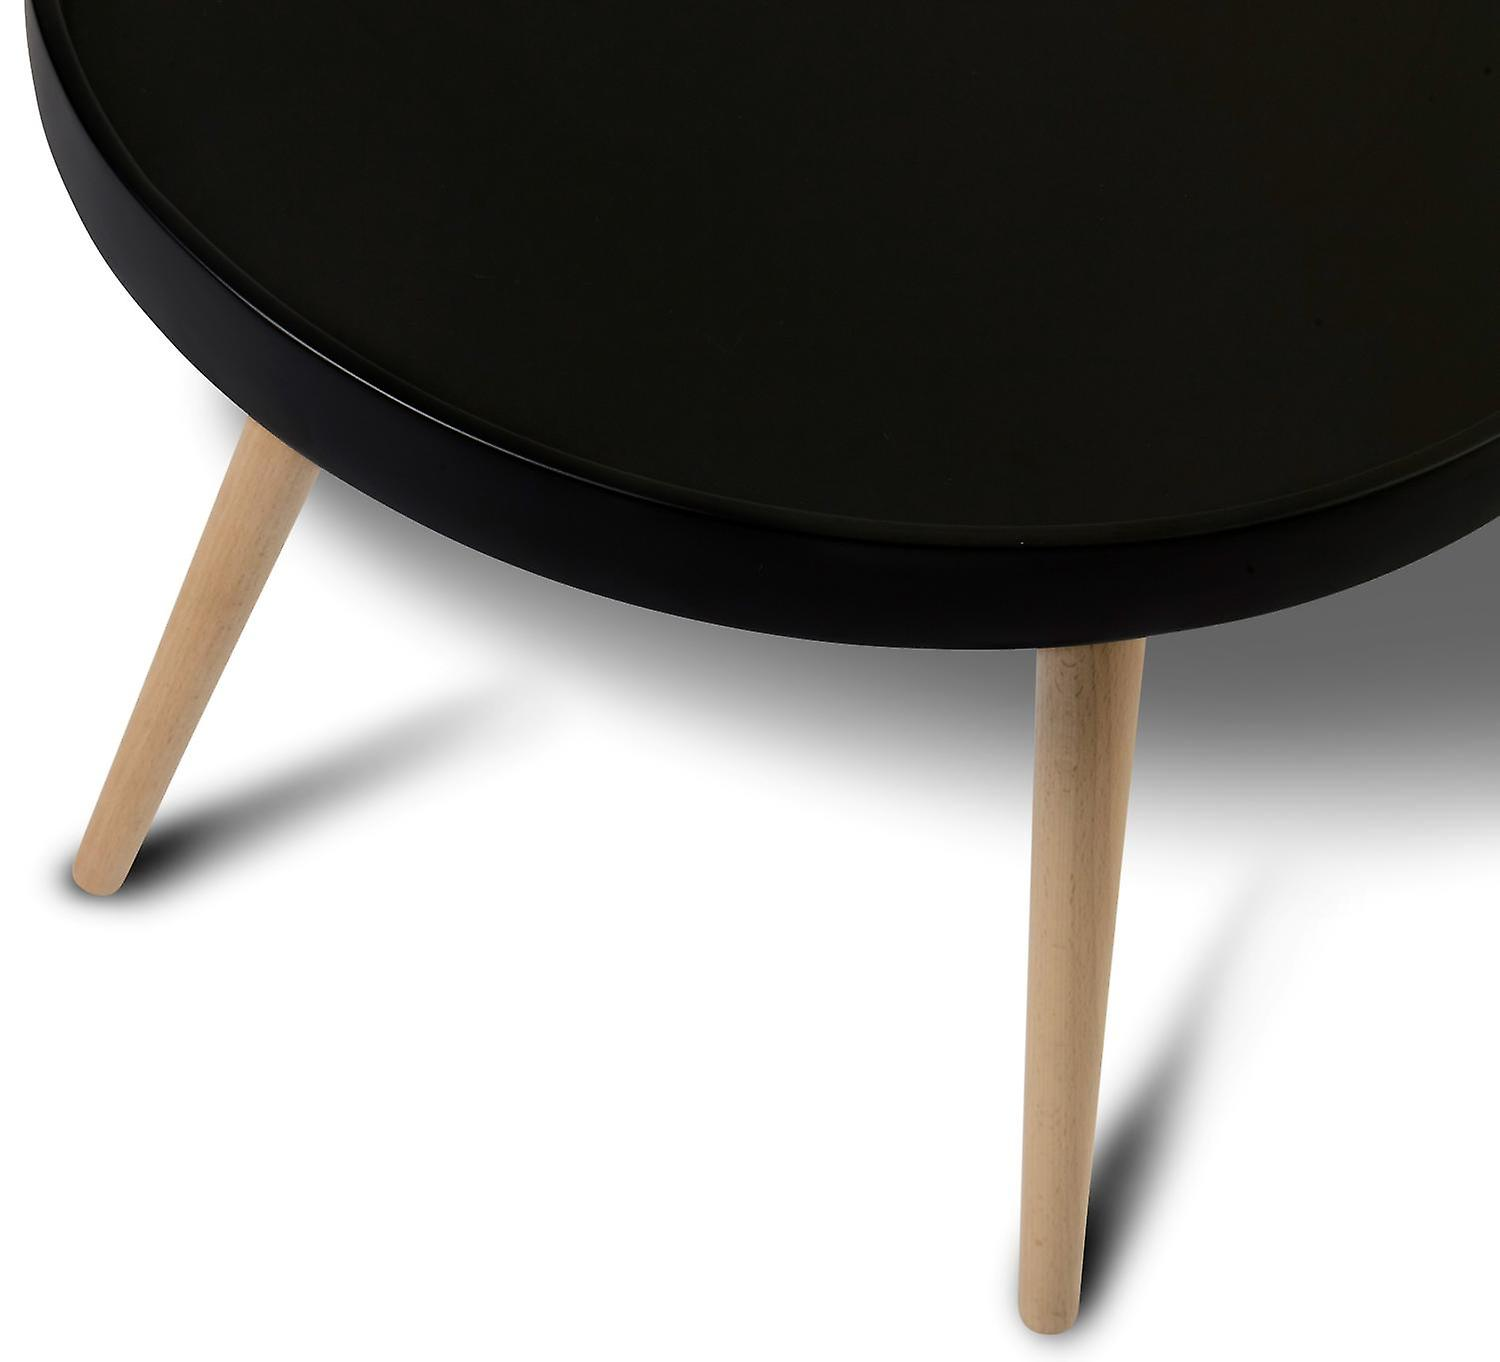 Furnhouse Opus Coffee Table Large, Black Top, Natural Wooden Legs, 90x90x45 cm